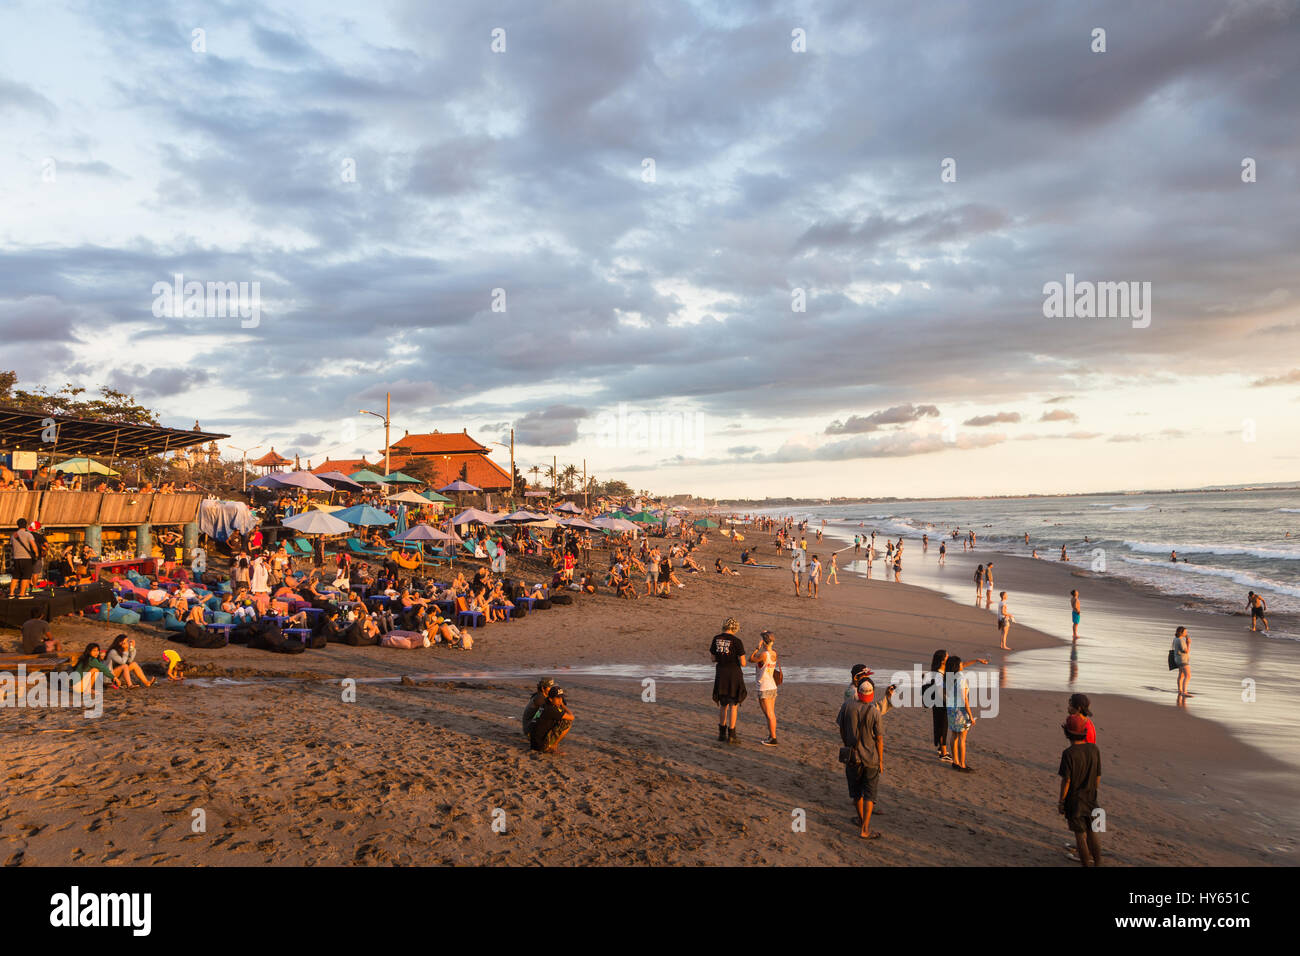 BALI, INDONESIA - FEBRUARY 18, 2017: A crowd of tourists and backpackers enjoy the sunset in a beach bar in Canggu - Stock Image